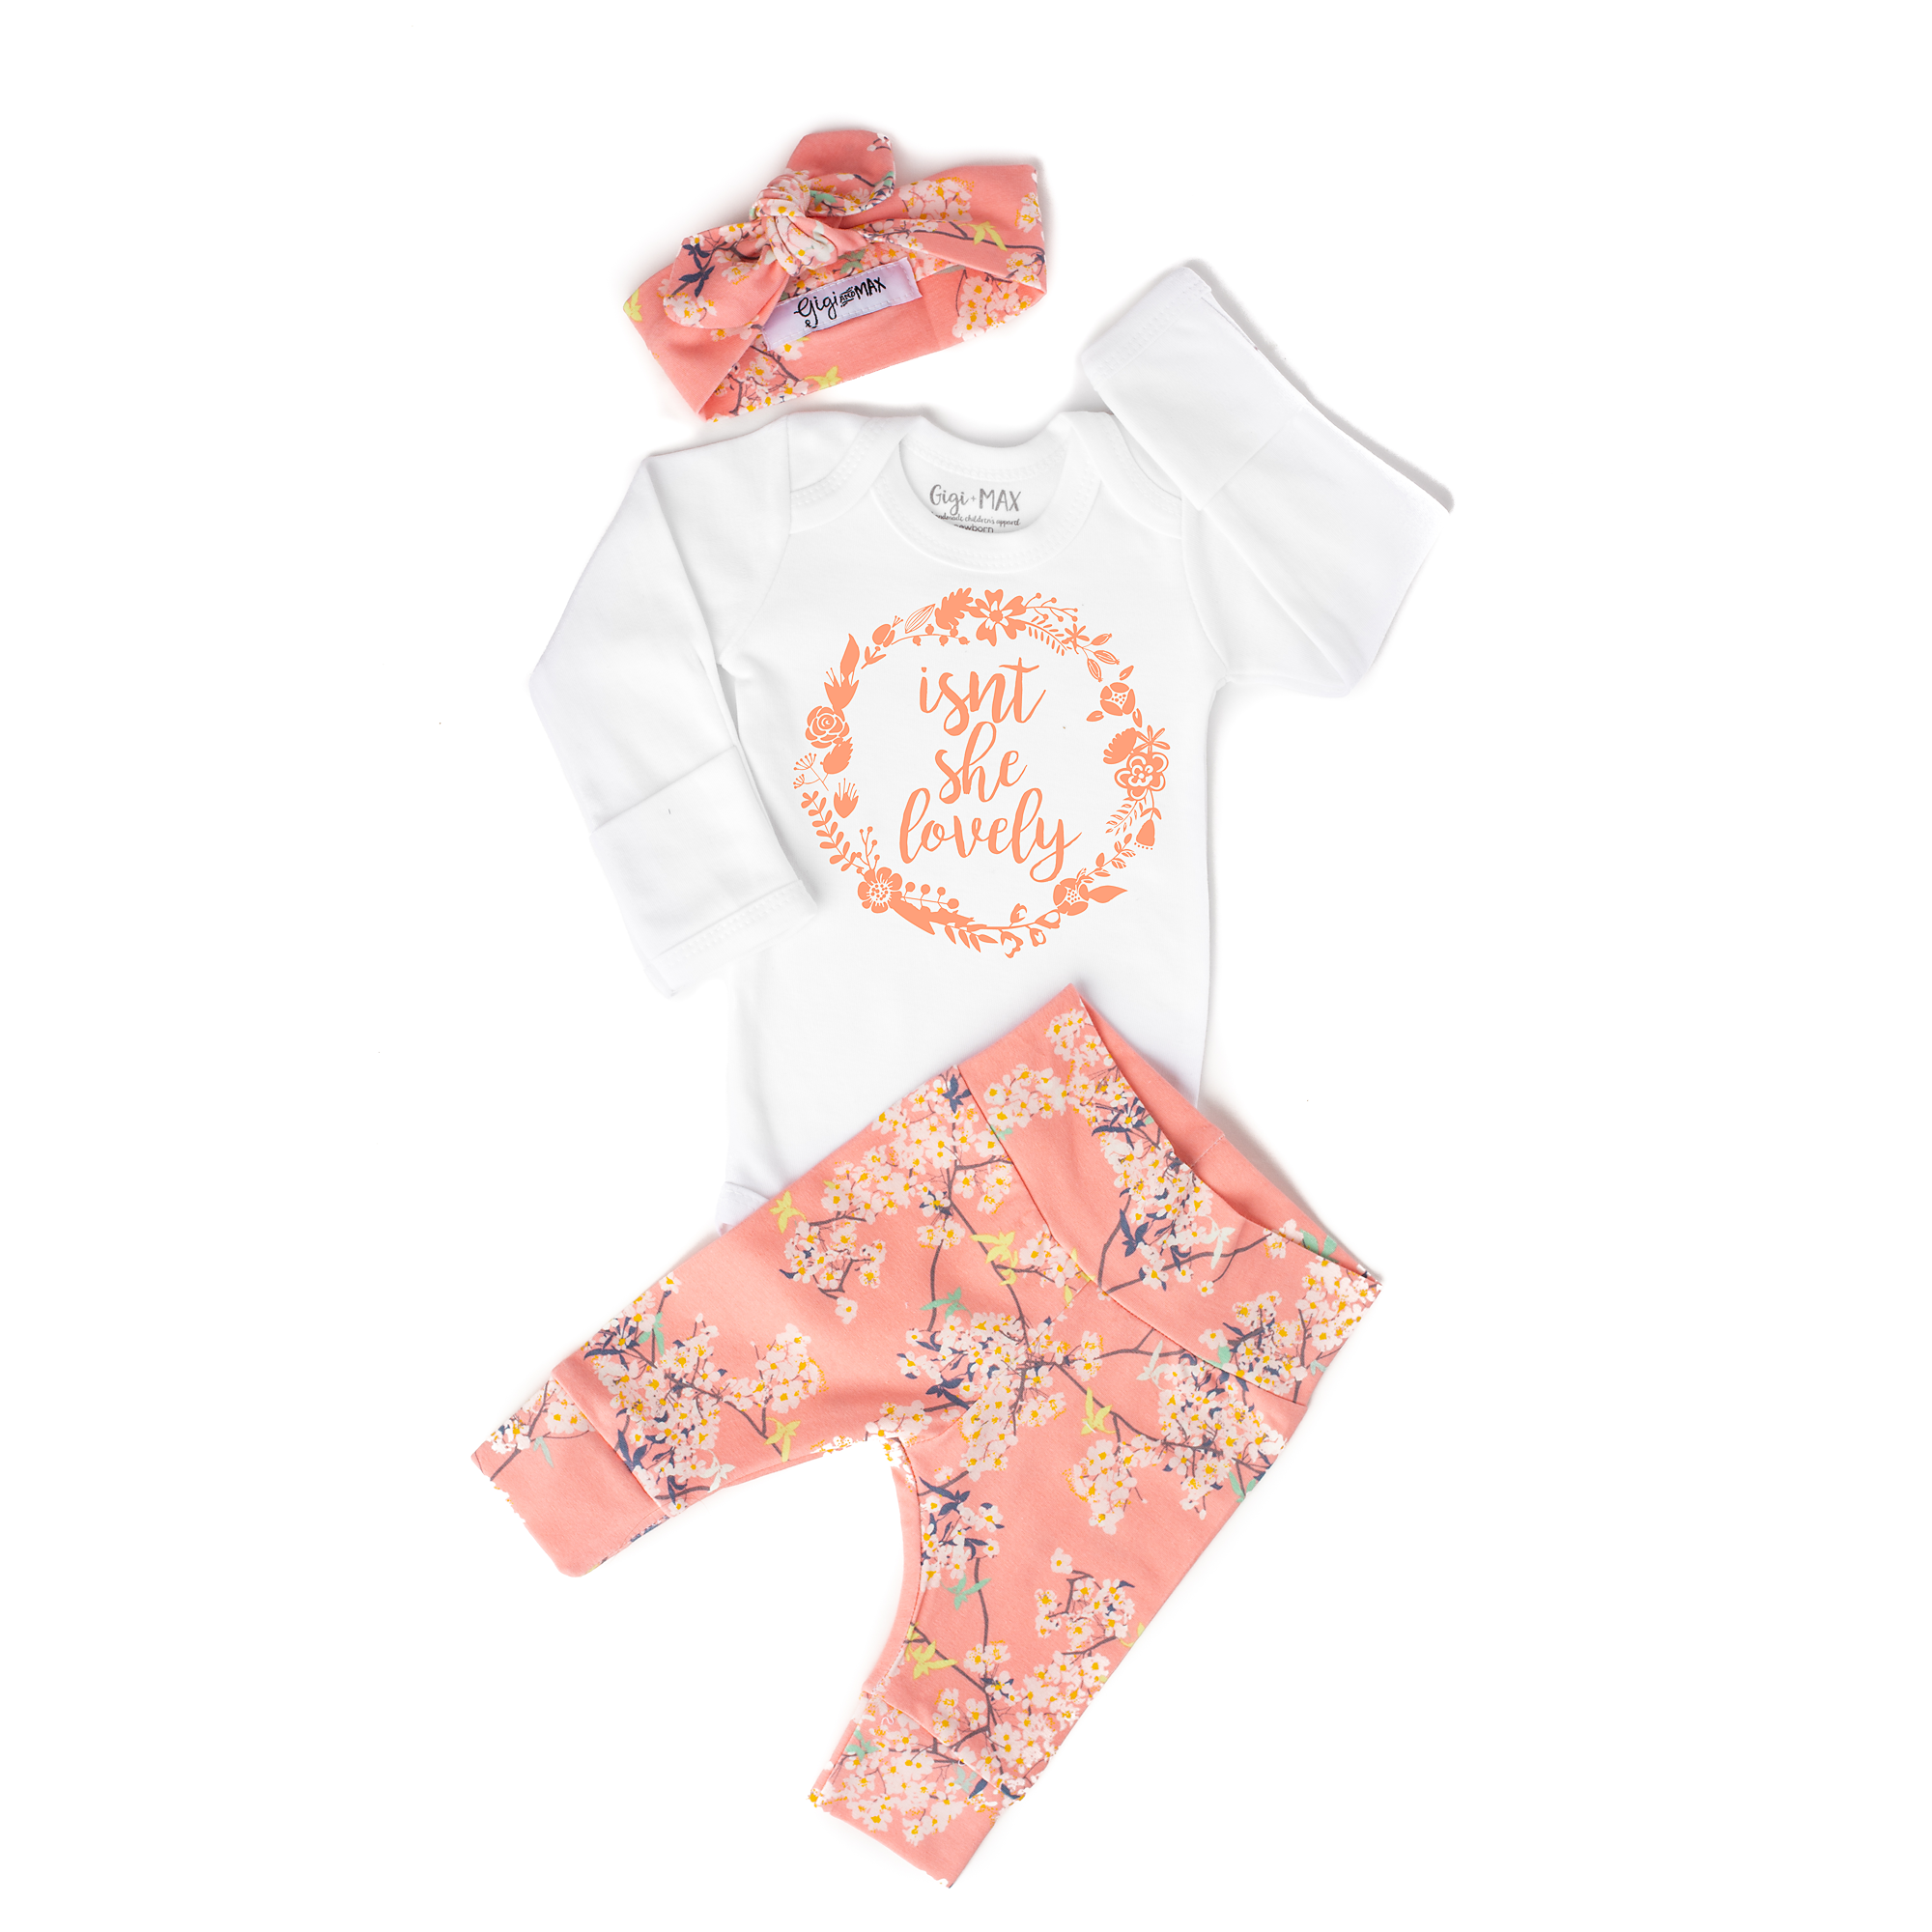 Isn T She Lovely Pink Floral Newborn Outfit Baby Coming Home Outfit Baby Hospital Outfit Coming Home Outfit